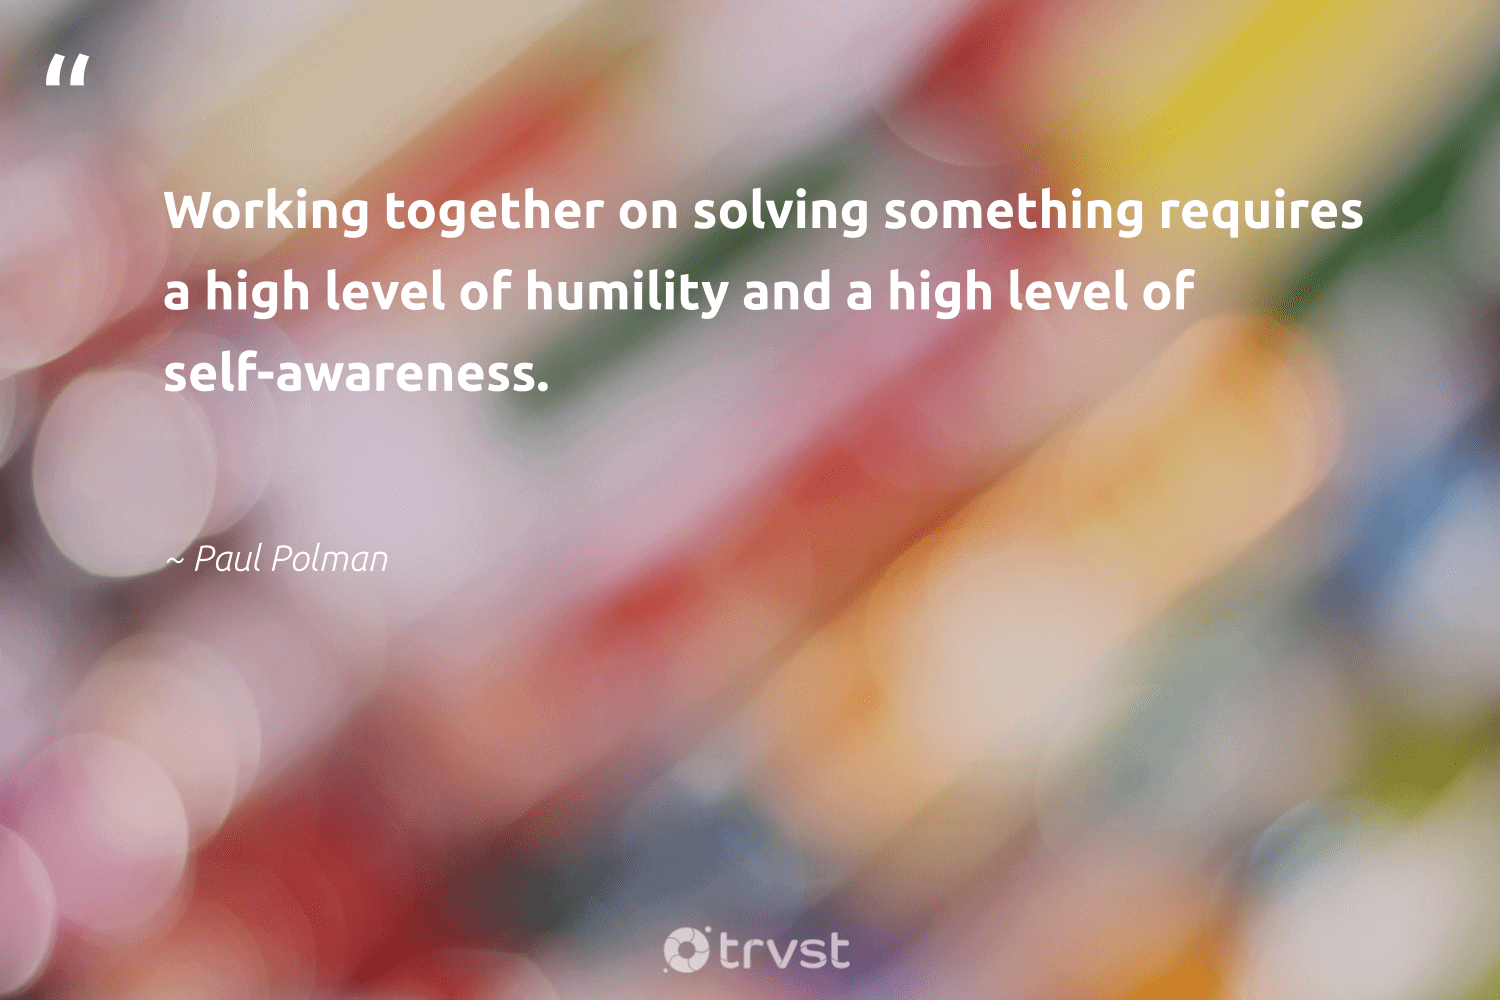 """""""Working together on solving something requires a high level of humility and a high level of self-awareness.""""  - Paul Polman #trvst #quotes #workingtogether #nevergiveup #beinspired #begreat #bethechange #softskills #gogreen #futureofwork #socialimpact #planetearthfirst"""